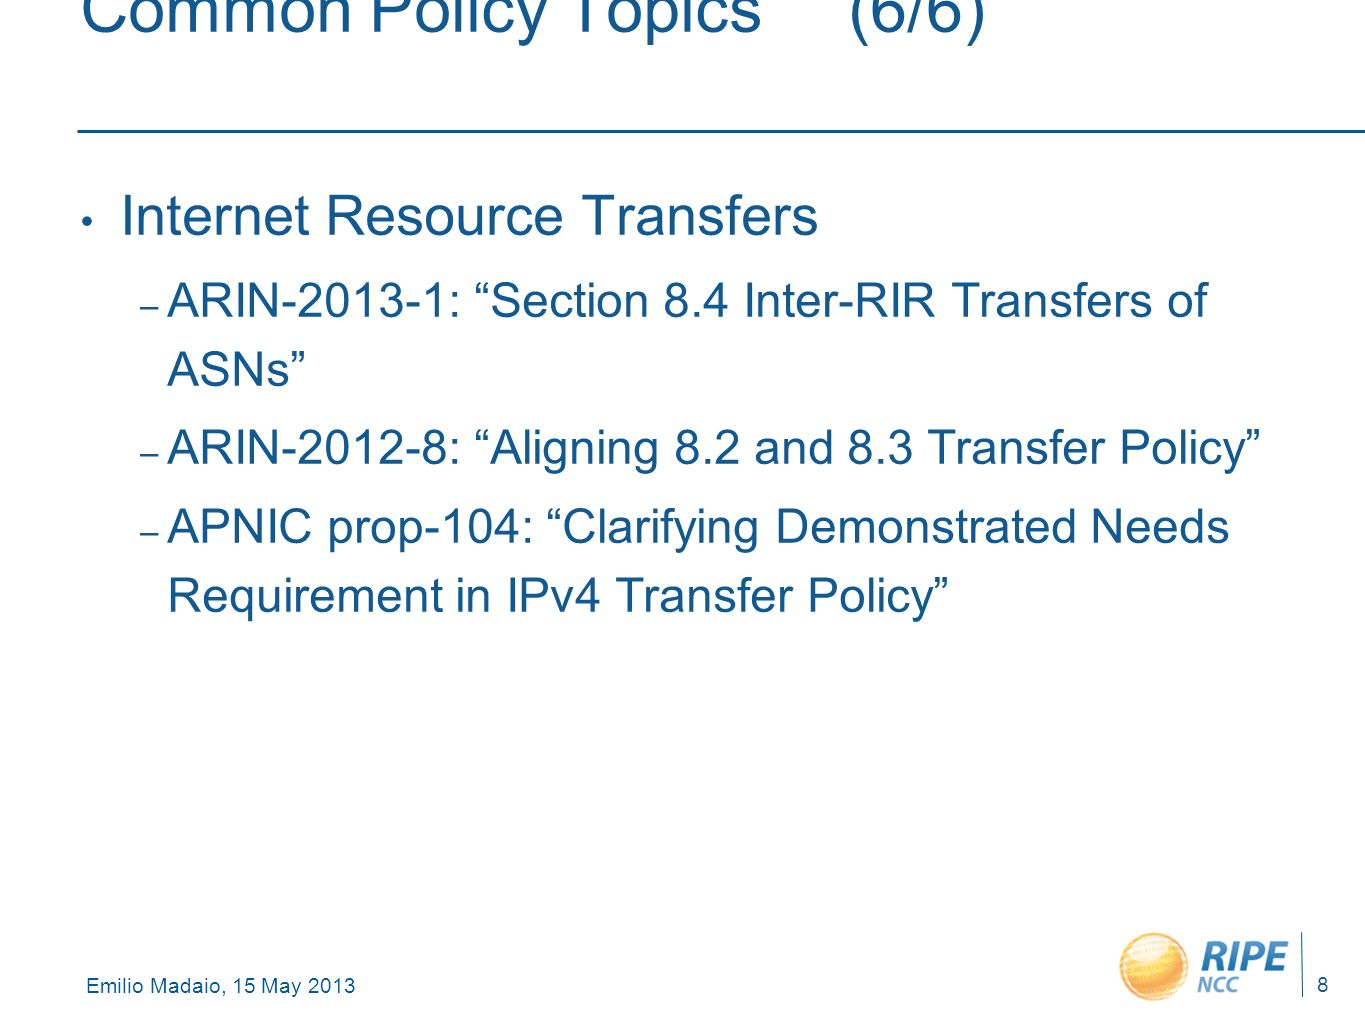 Emilio Madaio, 15 May 2013 8 Common Policy Topics(6/6) Internet Resource Transfers – ARIN-2013-1: Section 8.4 Inter-RIR Transfers of ASNs – ARIN-2012-8: Aligning 8.2 and 8.3 Transfer Policy – APNIC prop-104: Clarifying Demonstrated Needs Requirement in IPv4 Transfer Policy